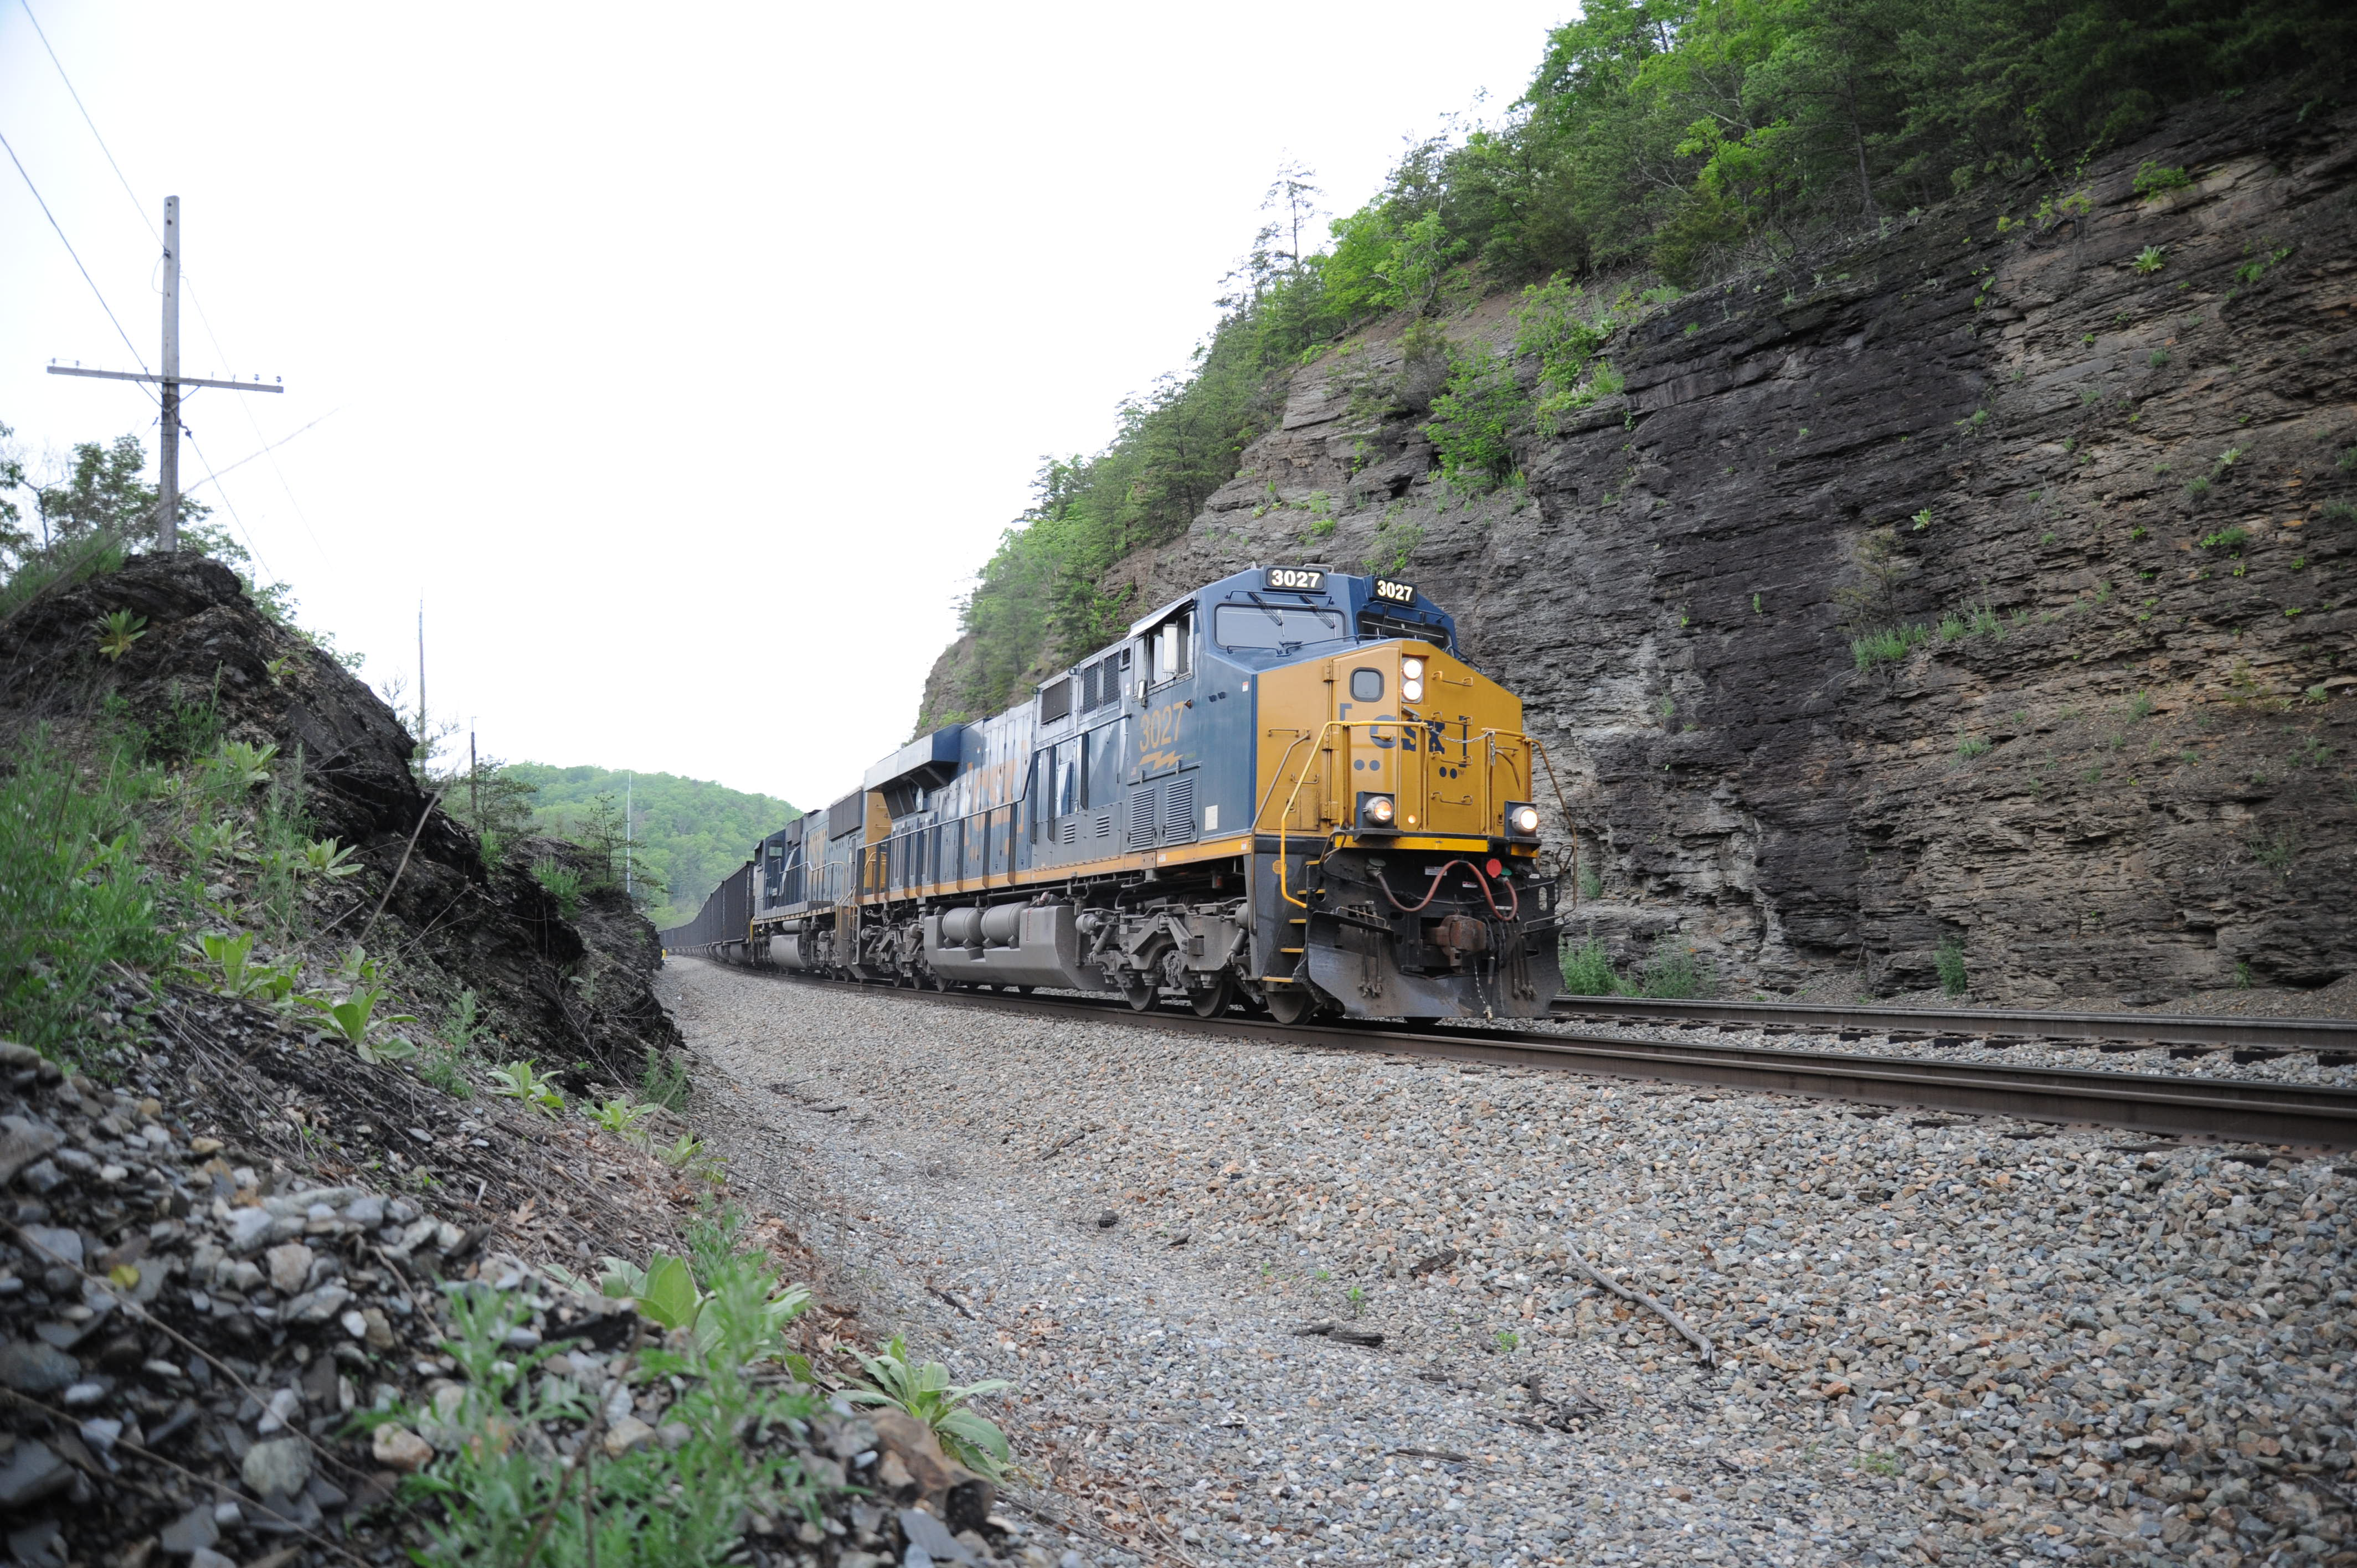 Csx What Changed Trains Magazine News Wire Railroad Lionel Train Track Wiring Like A Deer Caught In The Headlight Of Southbound Clinchfield Manifest Tunnel Near Altapass Nc I Am Bewildered At Thought That